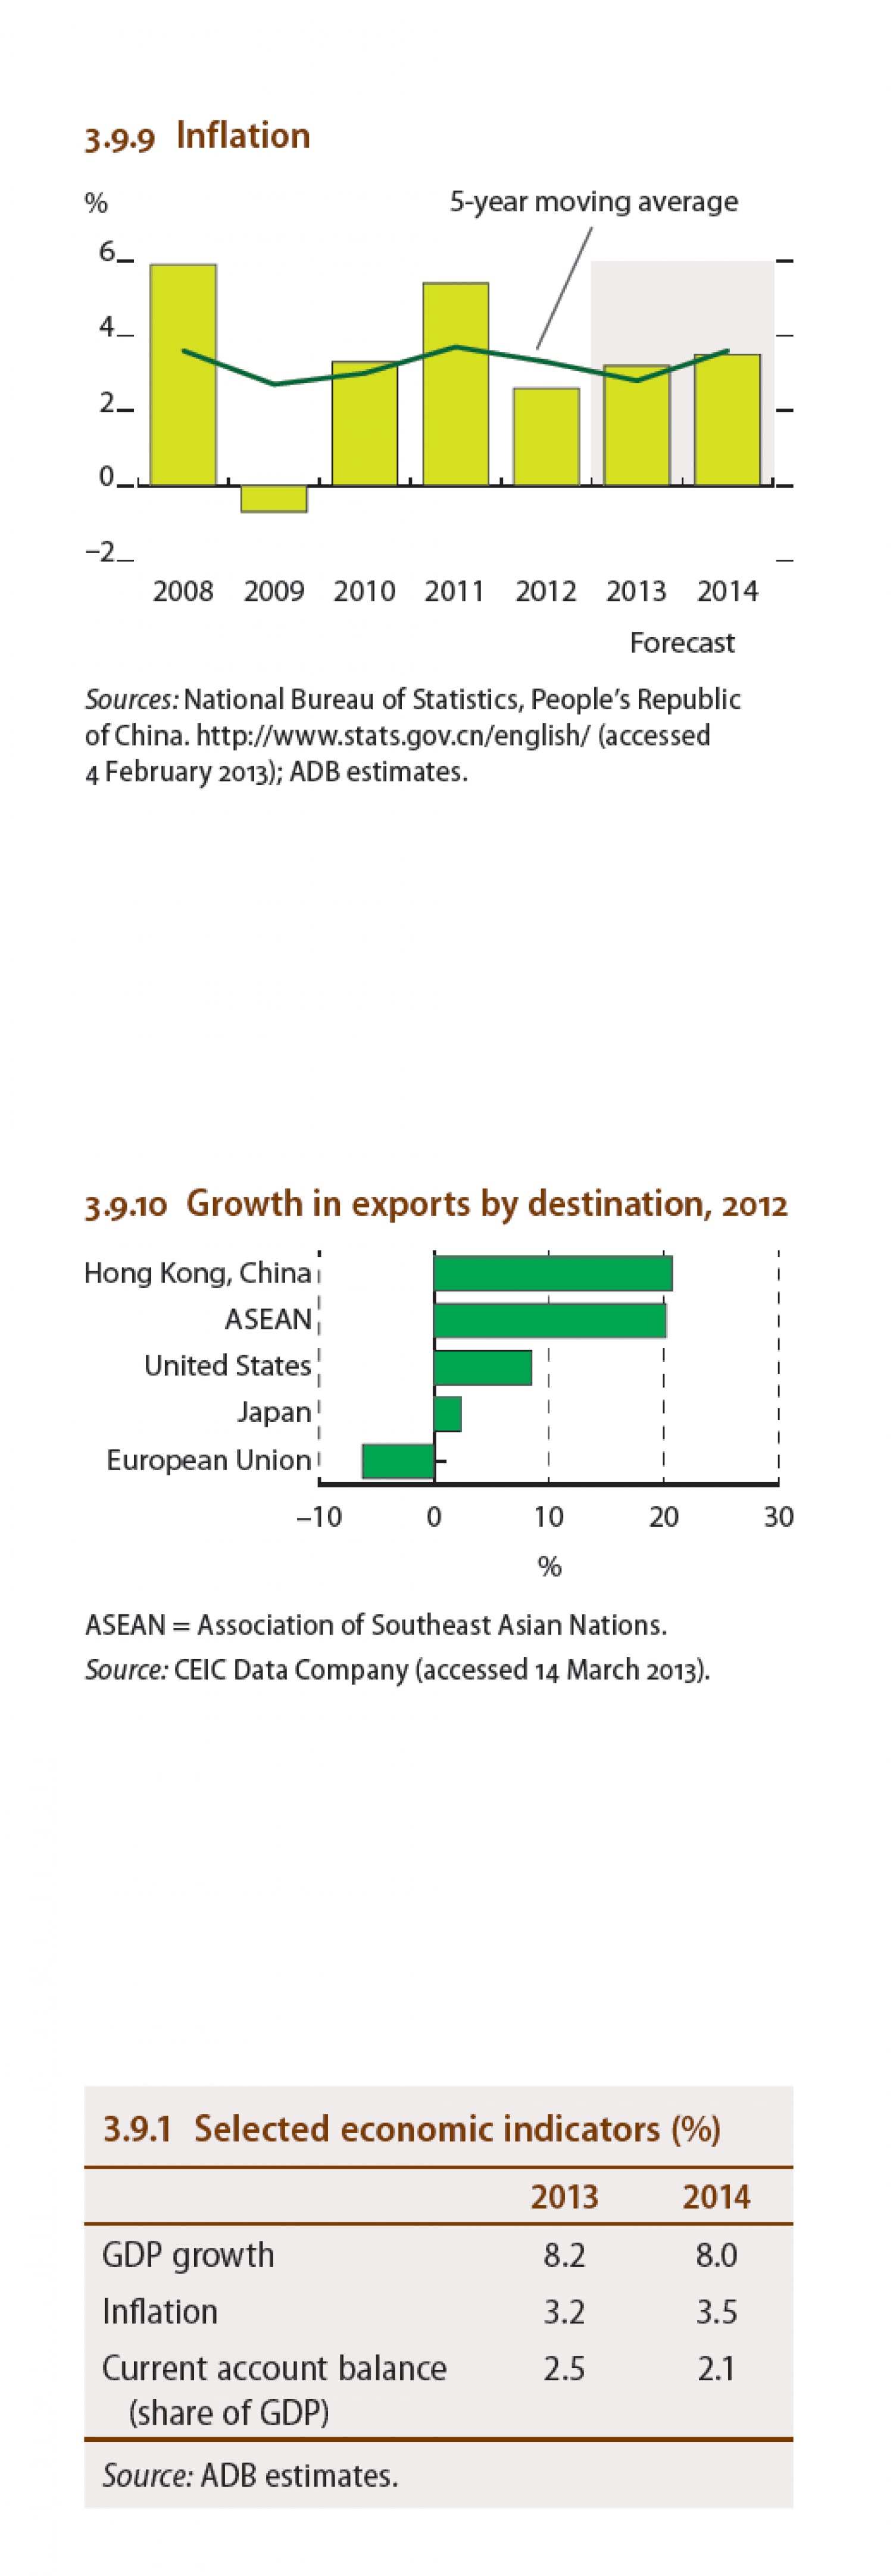 China : Growth in exports by destination, 2012 Infographic